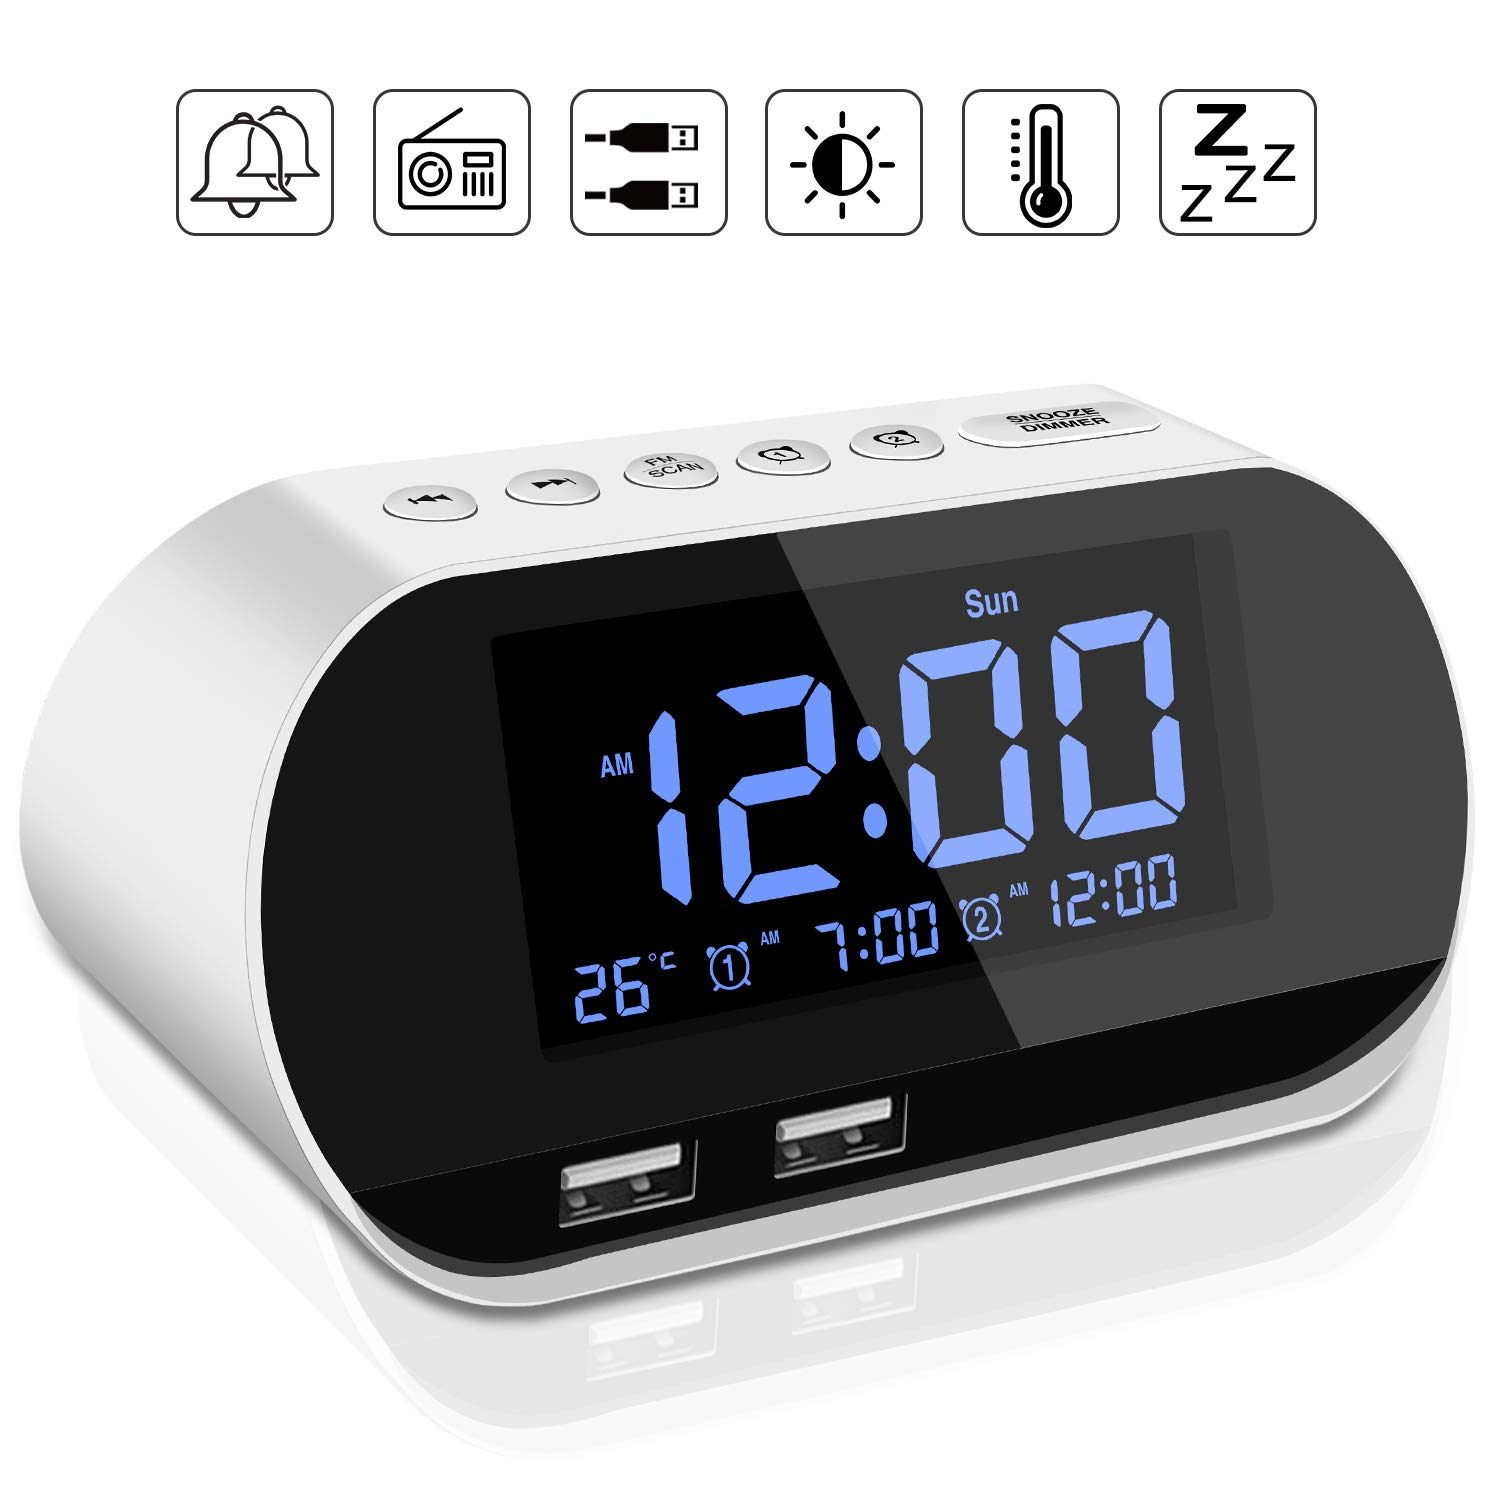 Top 9 Best Sounding Clock Radio On The Market - Buyer's Guide 38